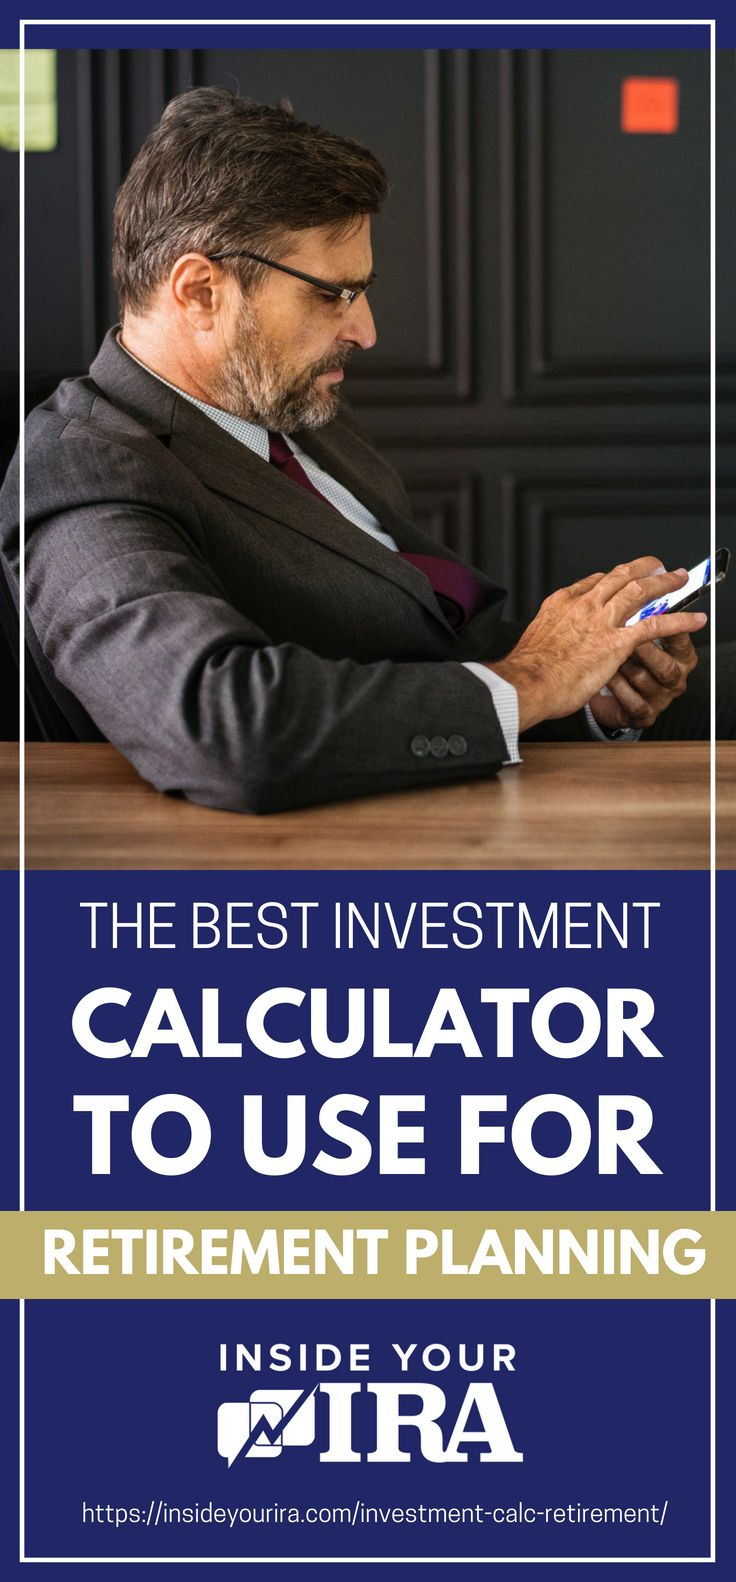 The Best Investment Calculator To Use For Retirement Planning | Inside Your IRA https://insideyourira.com/investment-calc-retirement/